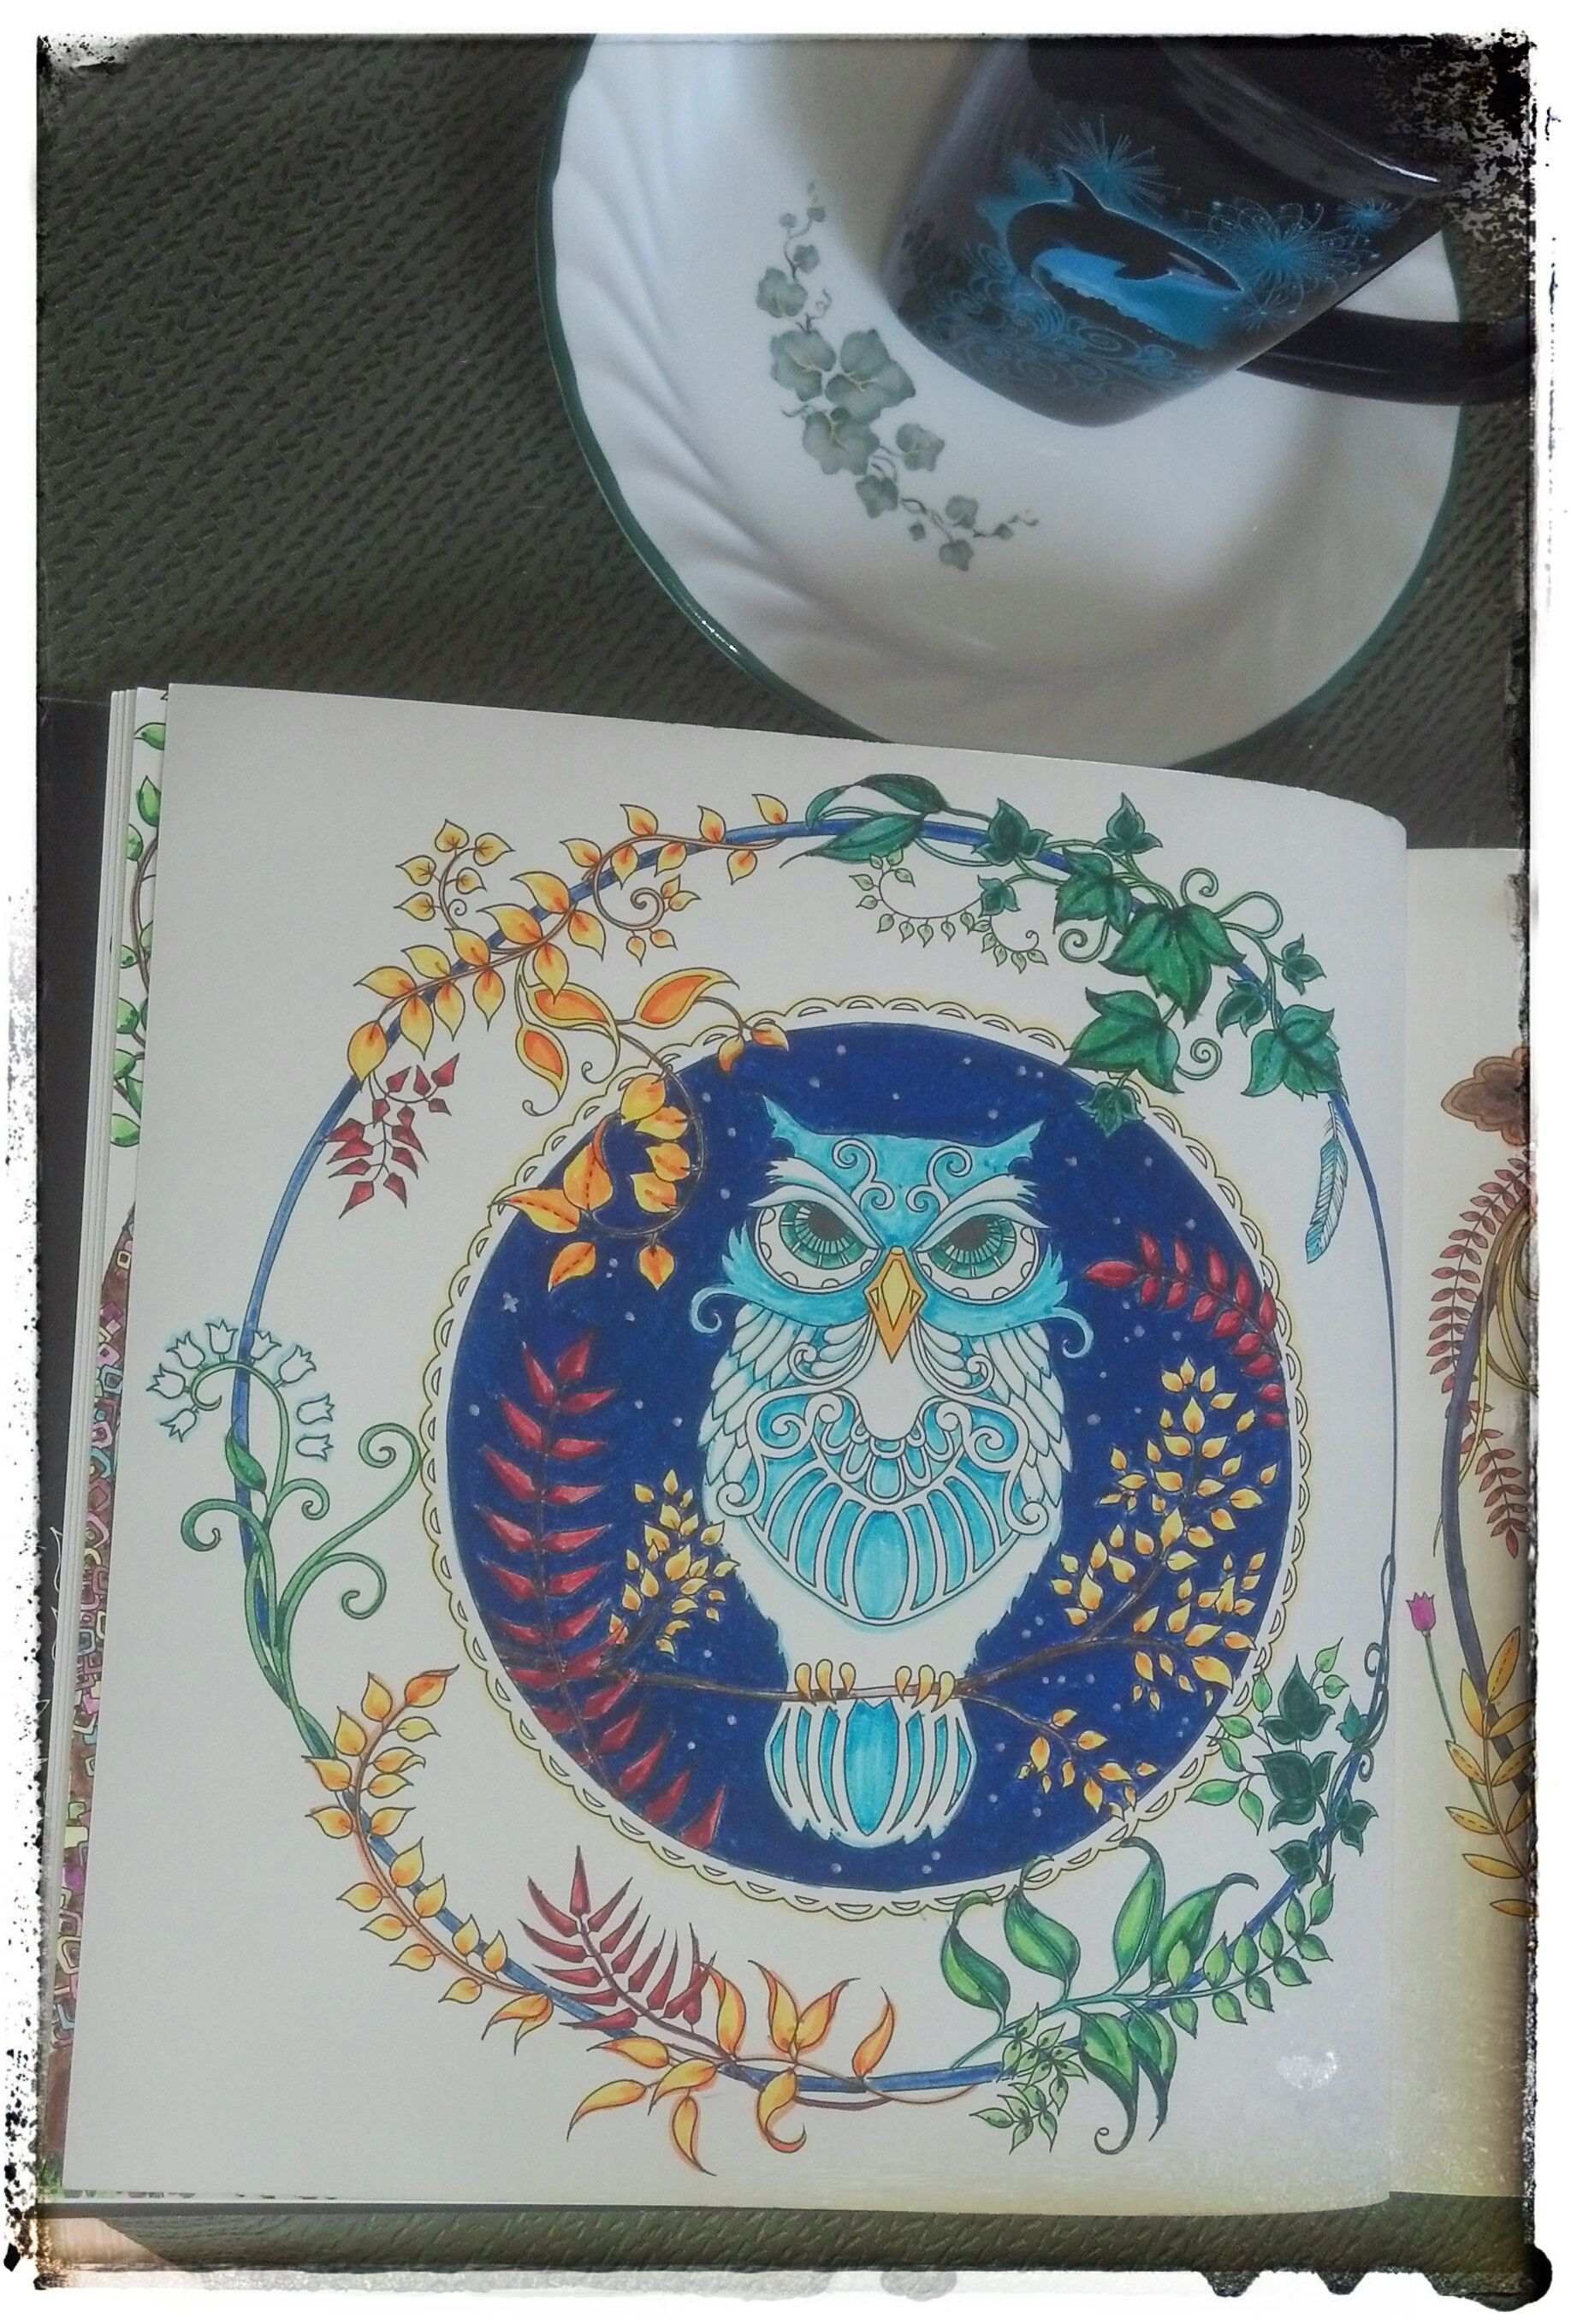 Adult Coloring Books This Is From Johanna Basfords Enchanted Forest I Like To Use